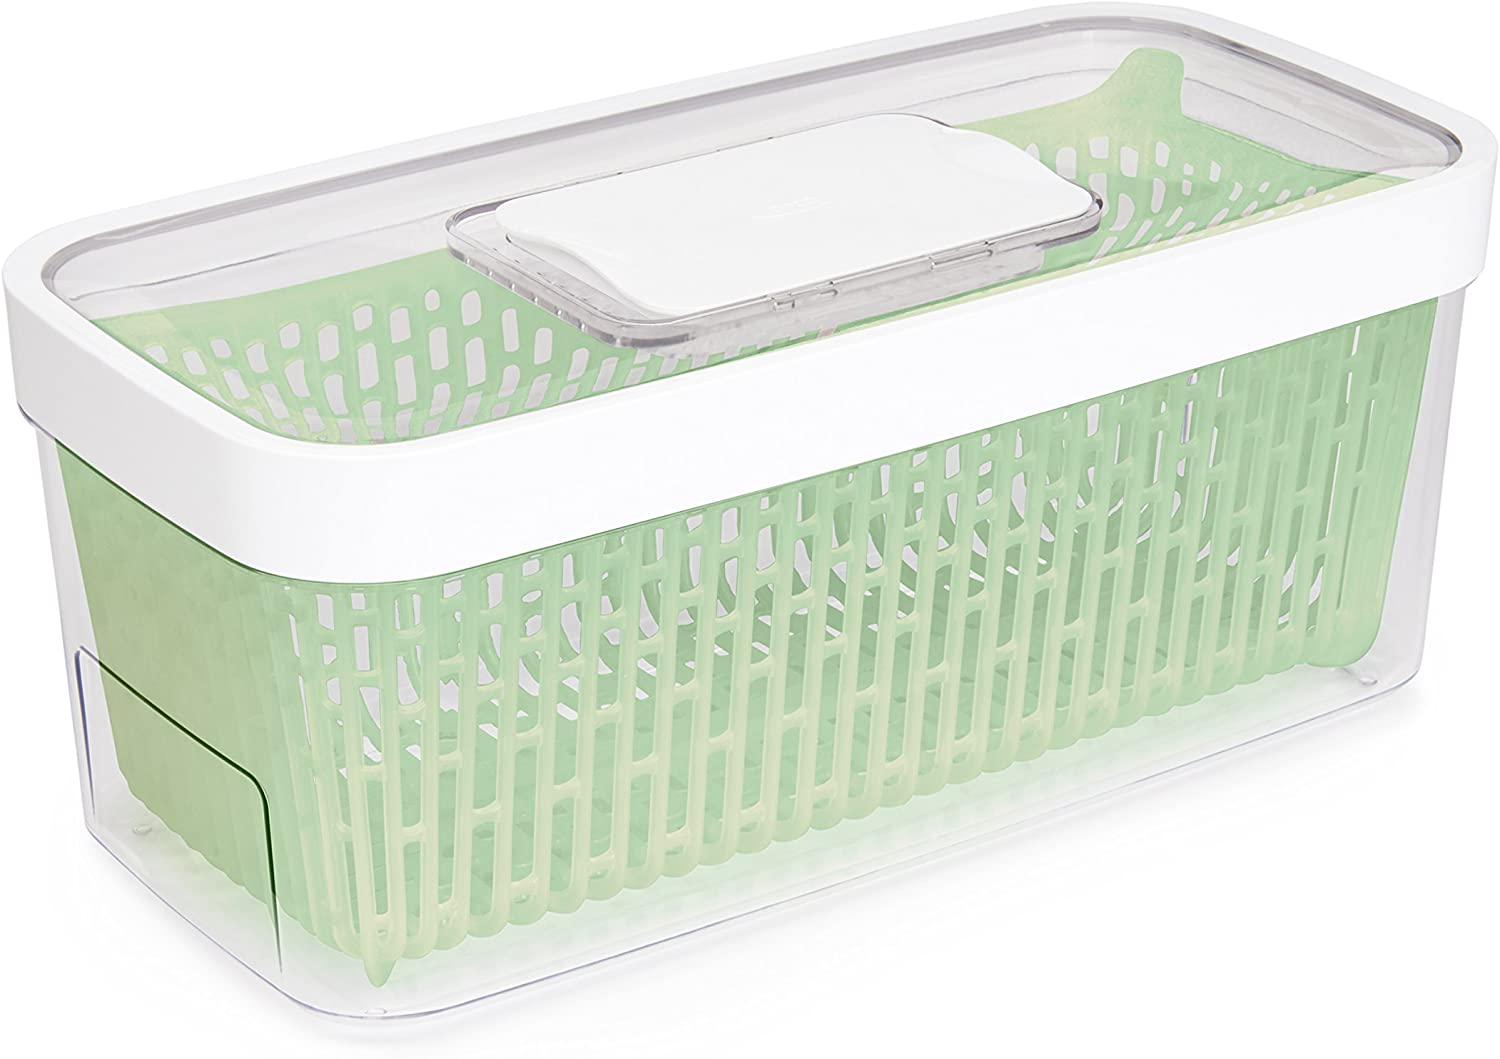 OXO Good Grips GreenSaver Produce Keeper - Large: Home & Kitchen